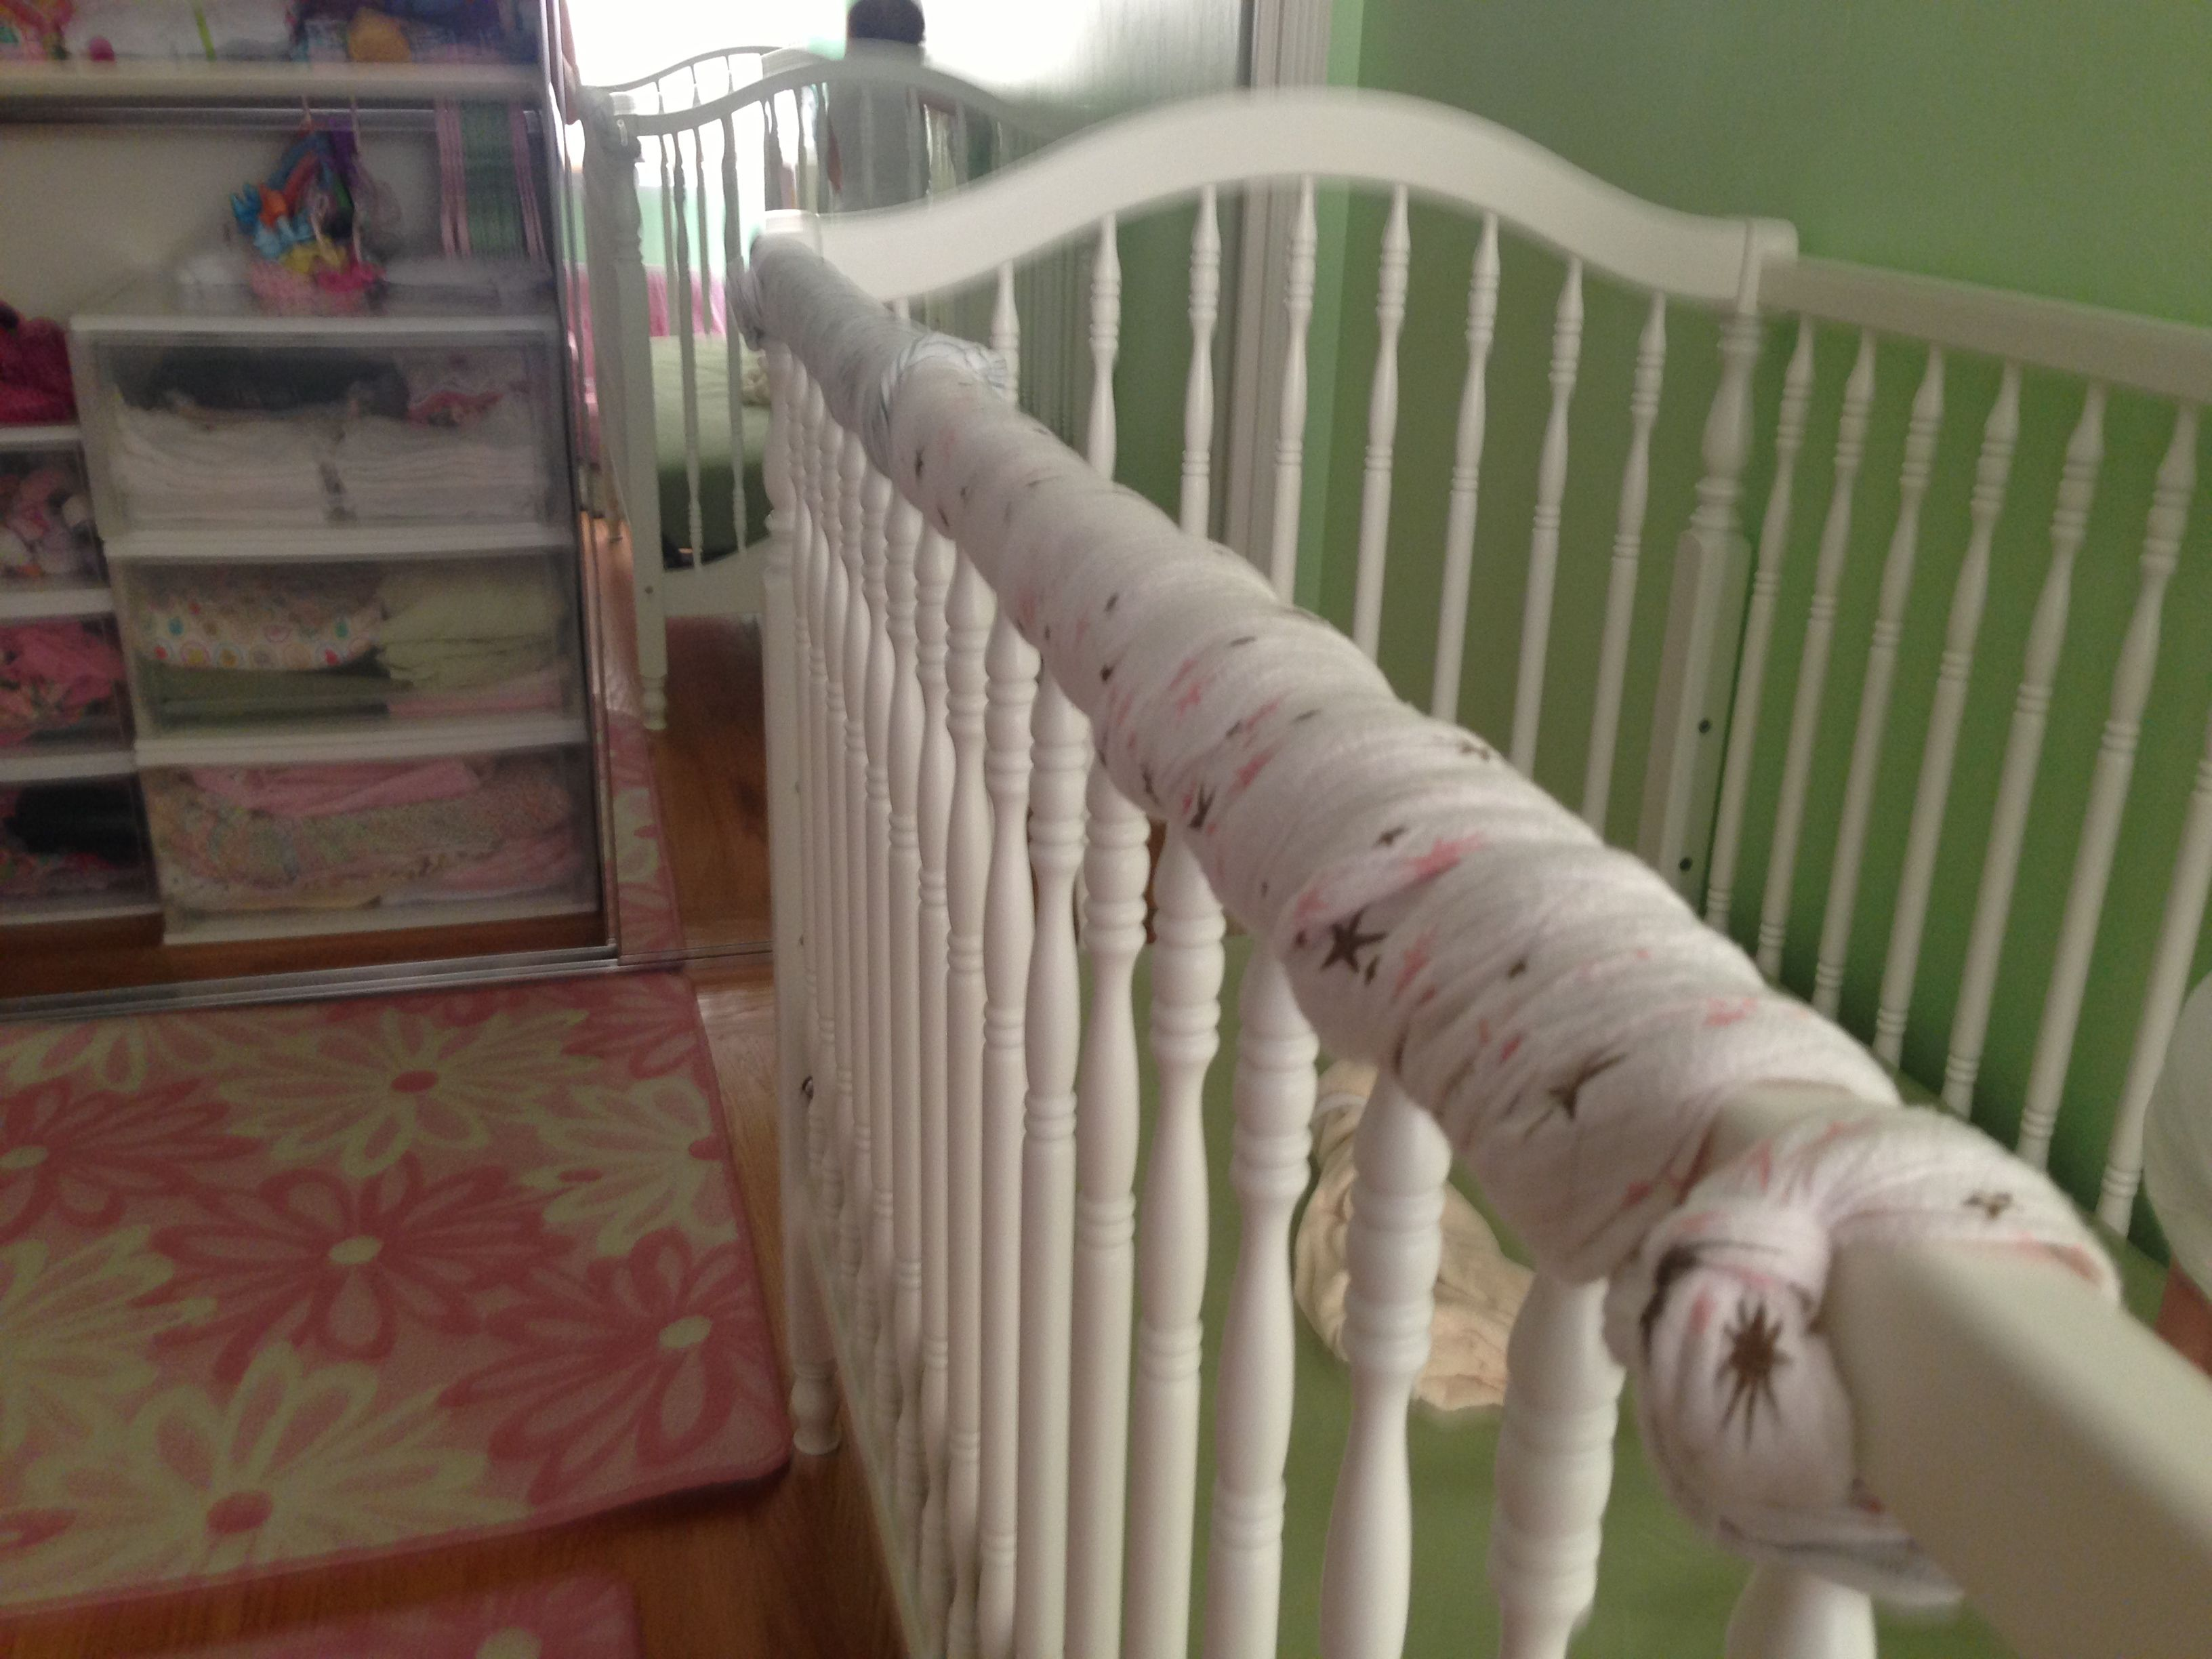 Use a swaddling blanket as a DIY crib rail teething guard